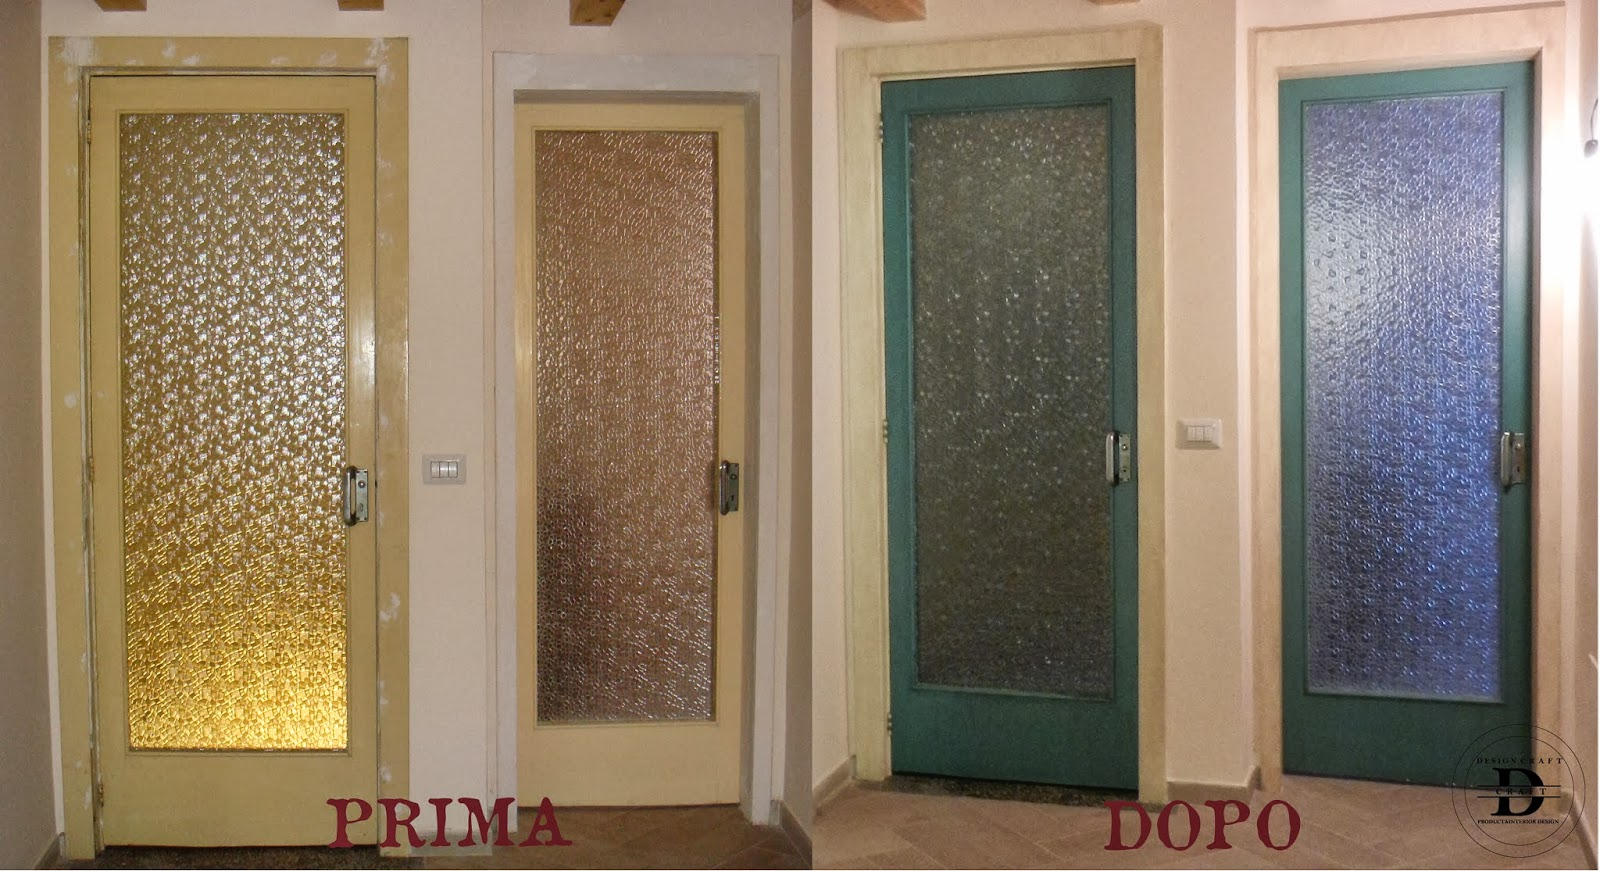 Design craft restyling vecchie porte - Rivestire una porta ...